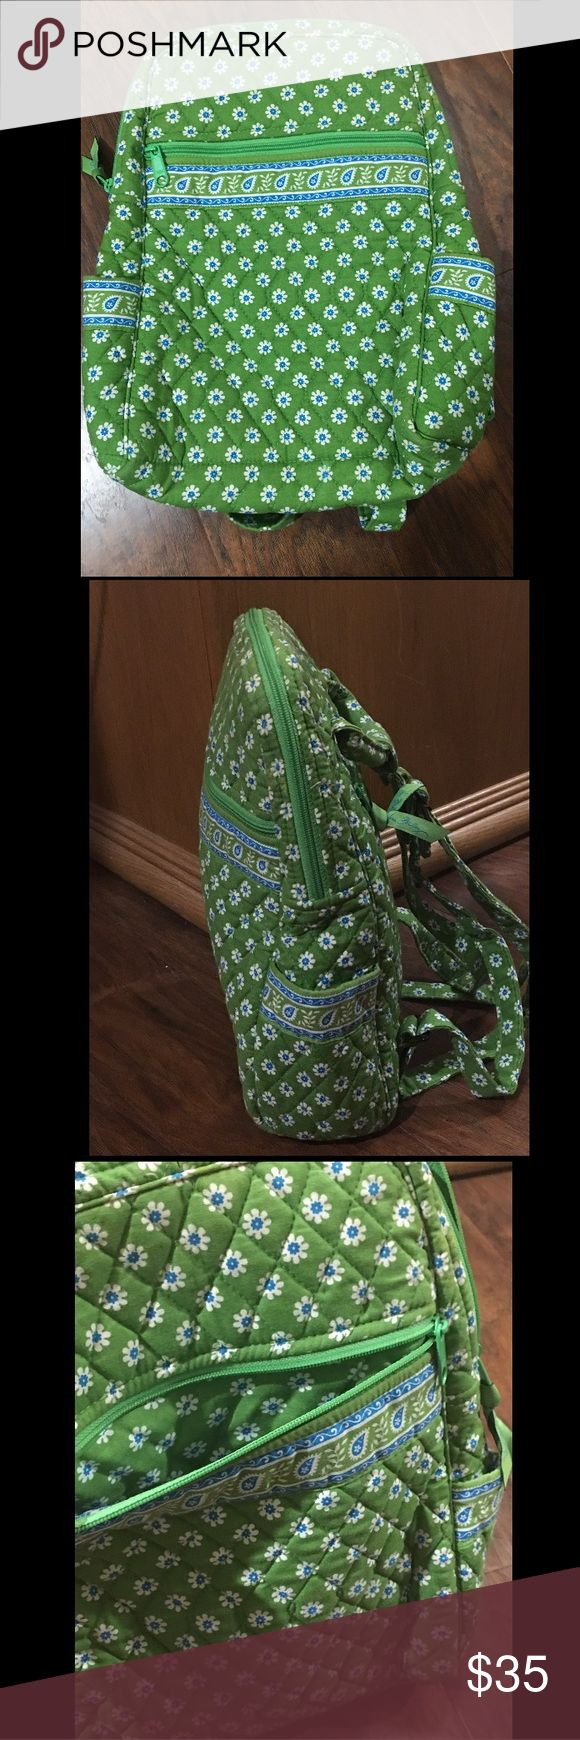 NWOT Vera Bradley Apple Green Backpack New without tags, Vera Bradley Backpack. Style is Apple Green. Only available here BRAND NEW!! Get it while supplies last! Vera Bradley Bags Backpacks